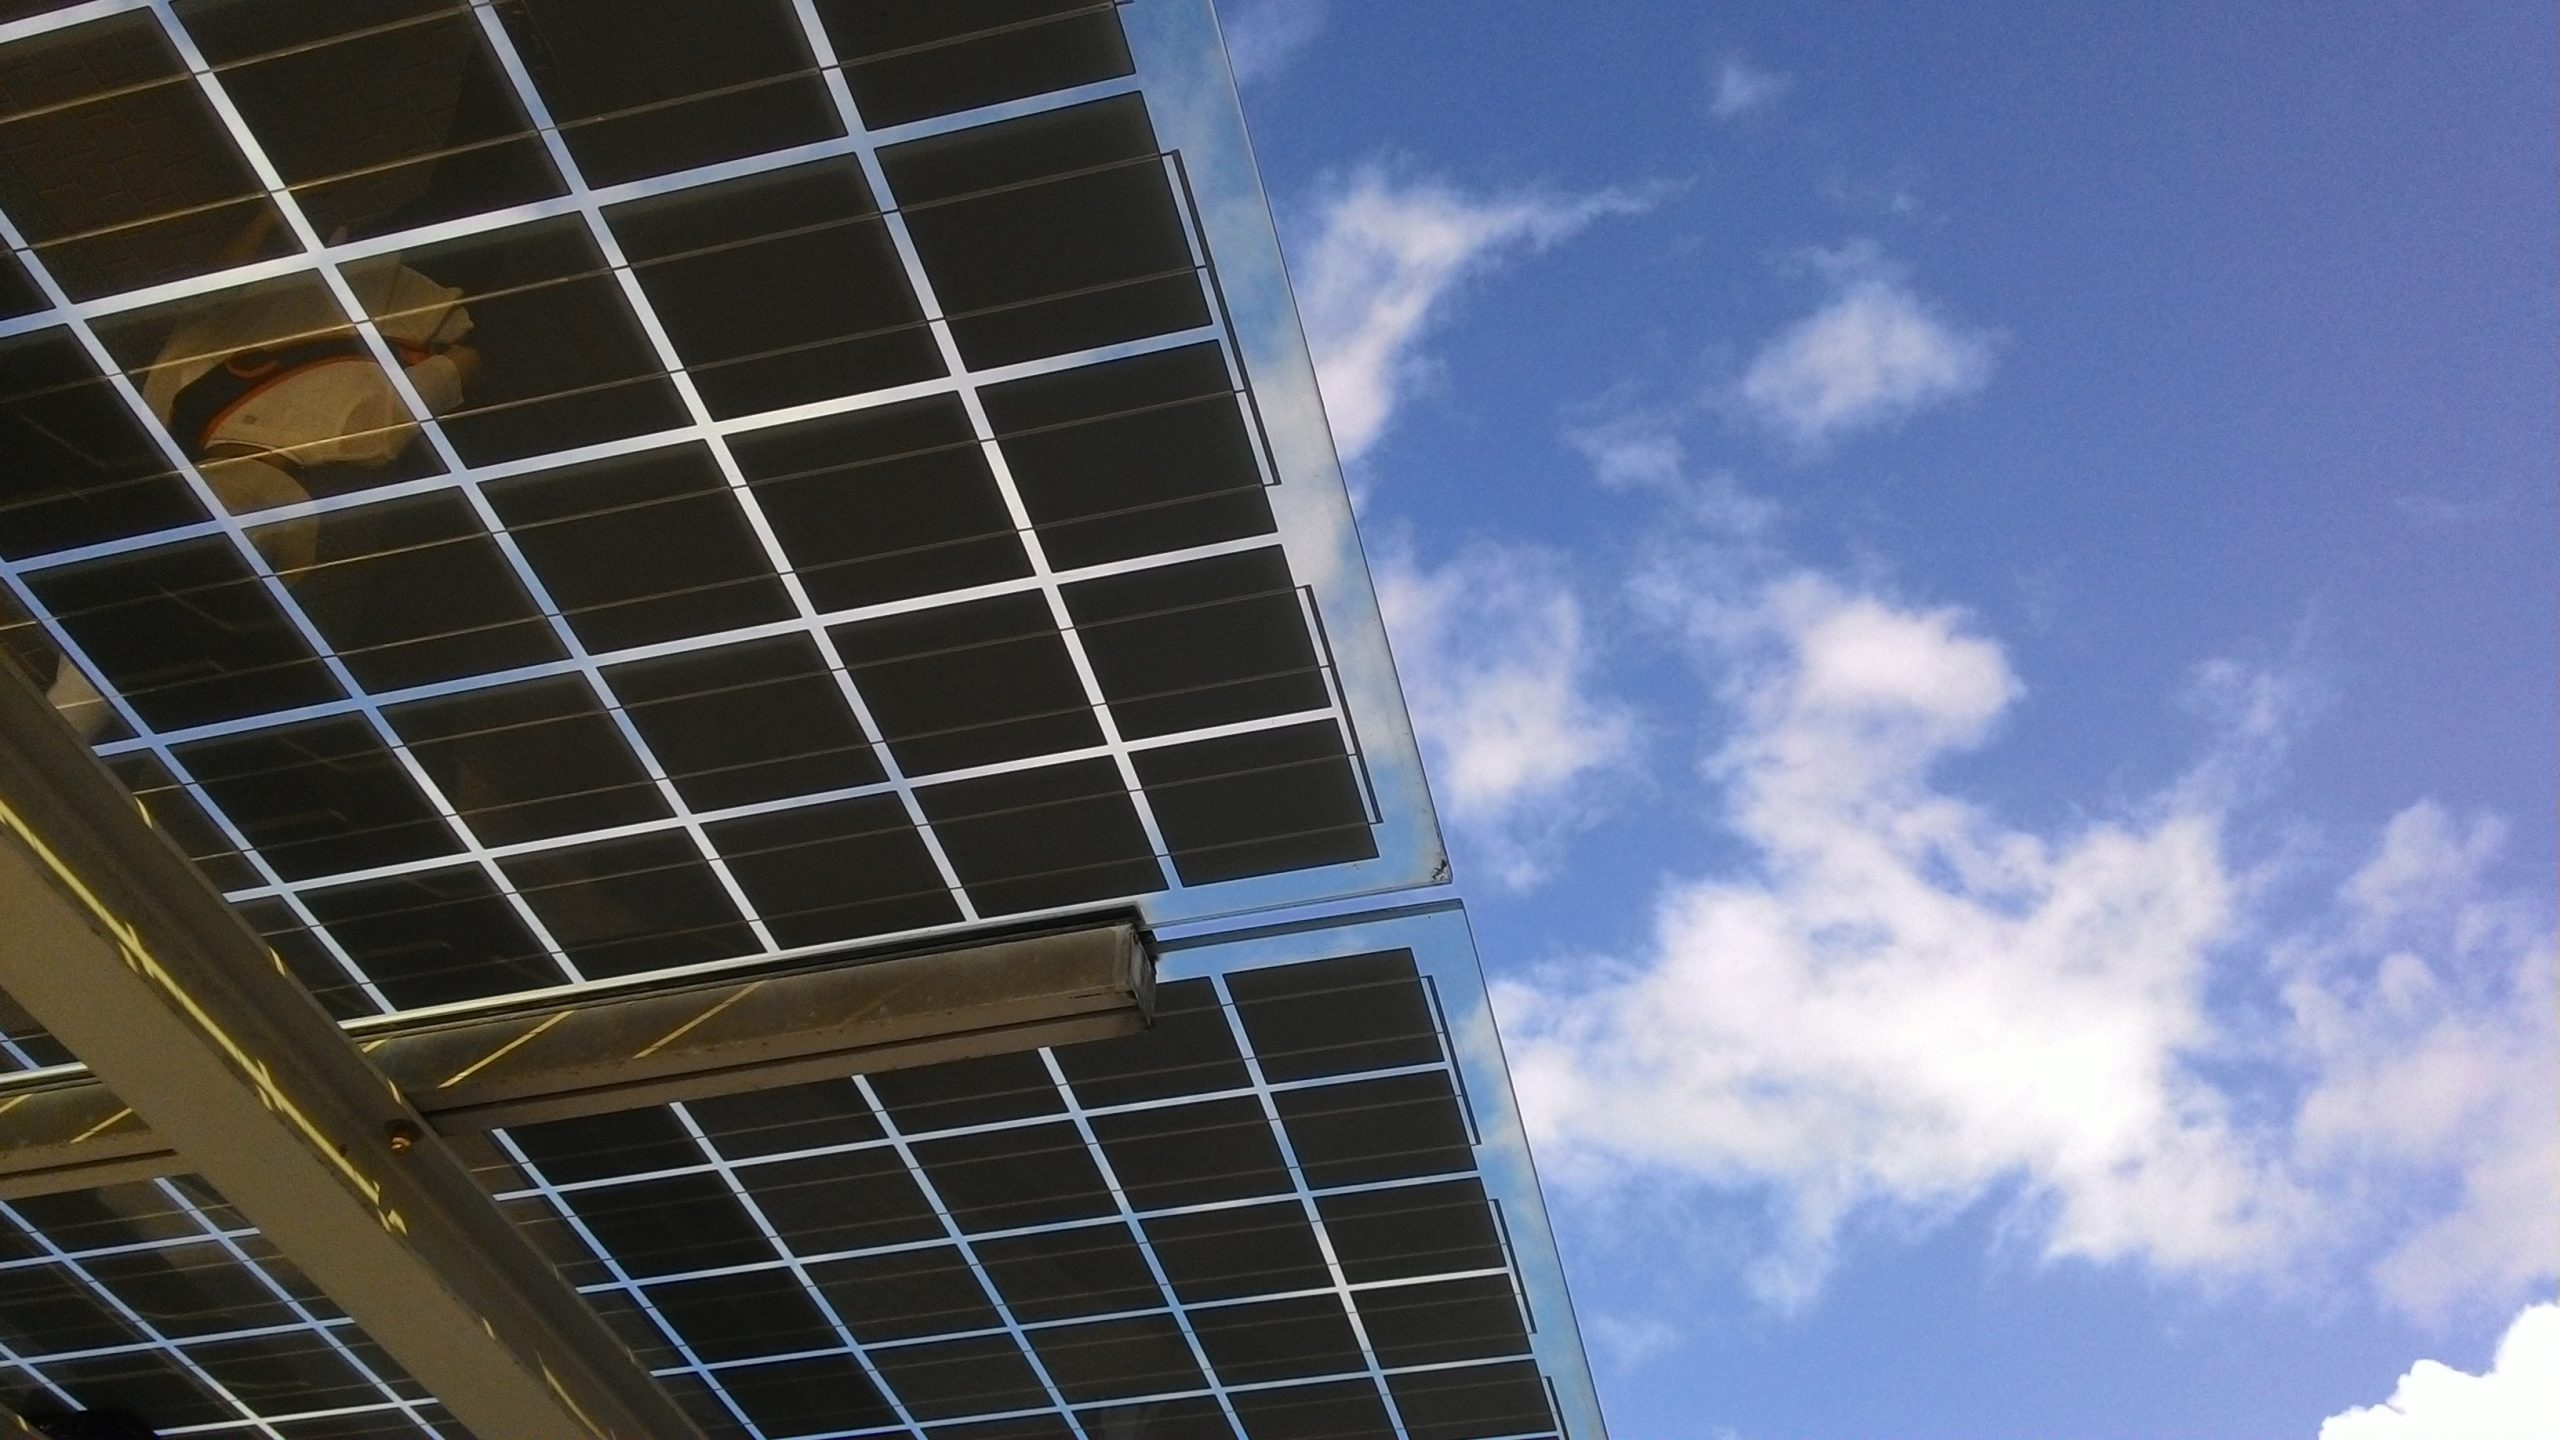 OYA Solar Adds to Executive Team with Chief Financial Officer and Head of Commercial, U.S.